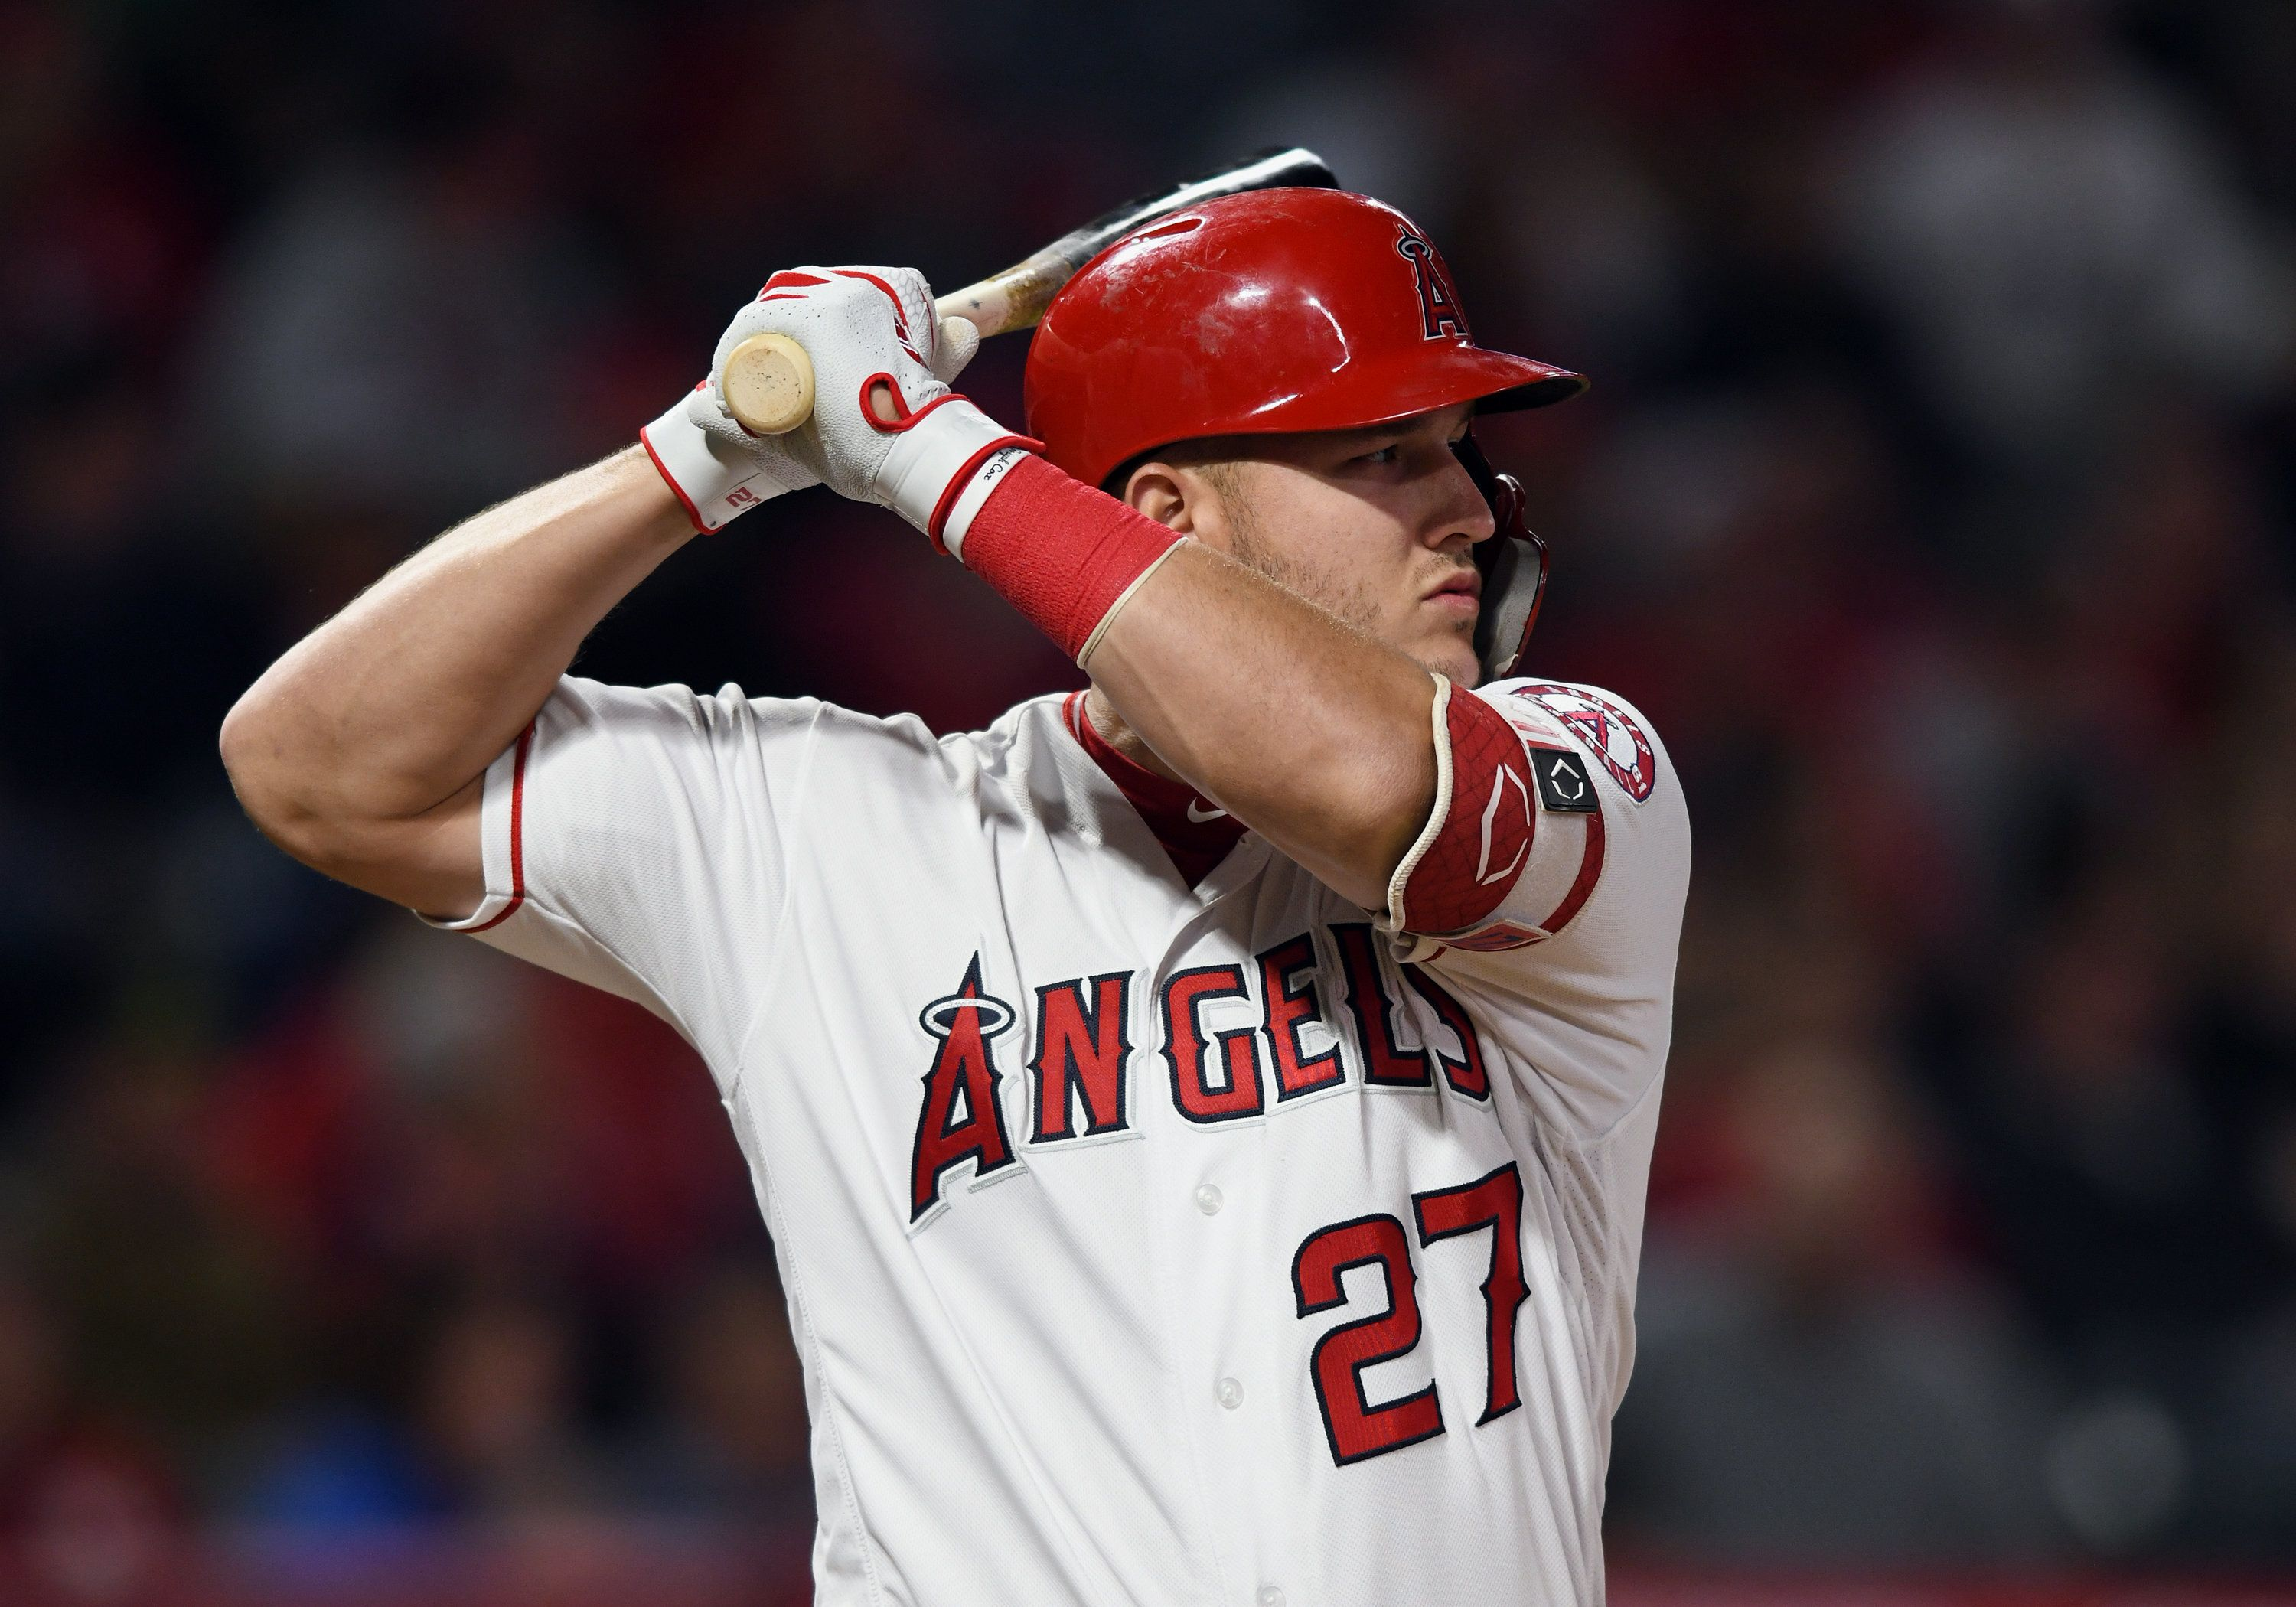 ANAHEIM, CA - APRIL 09: Los Angeles Angels center fielder Mike Trout (27) during an at bat in the second inning of a game against the Milwaukee Brewers played on April 9, 2019 at Angel Stadium of Anaheim in Anaheim, CA. (Photo by John Cordes/Icon Sportswire via Getty Images)